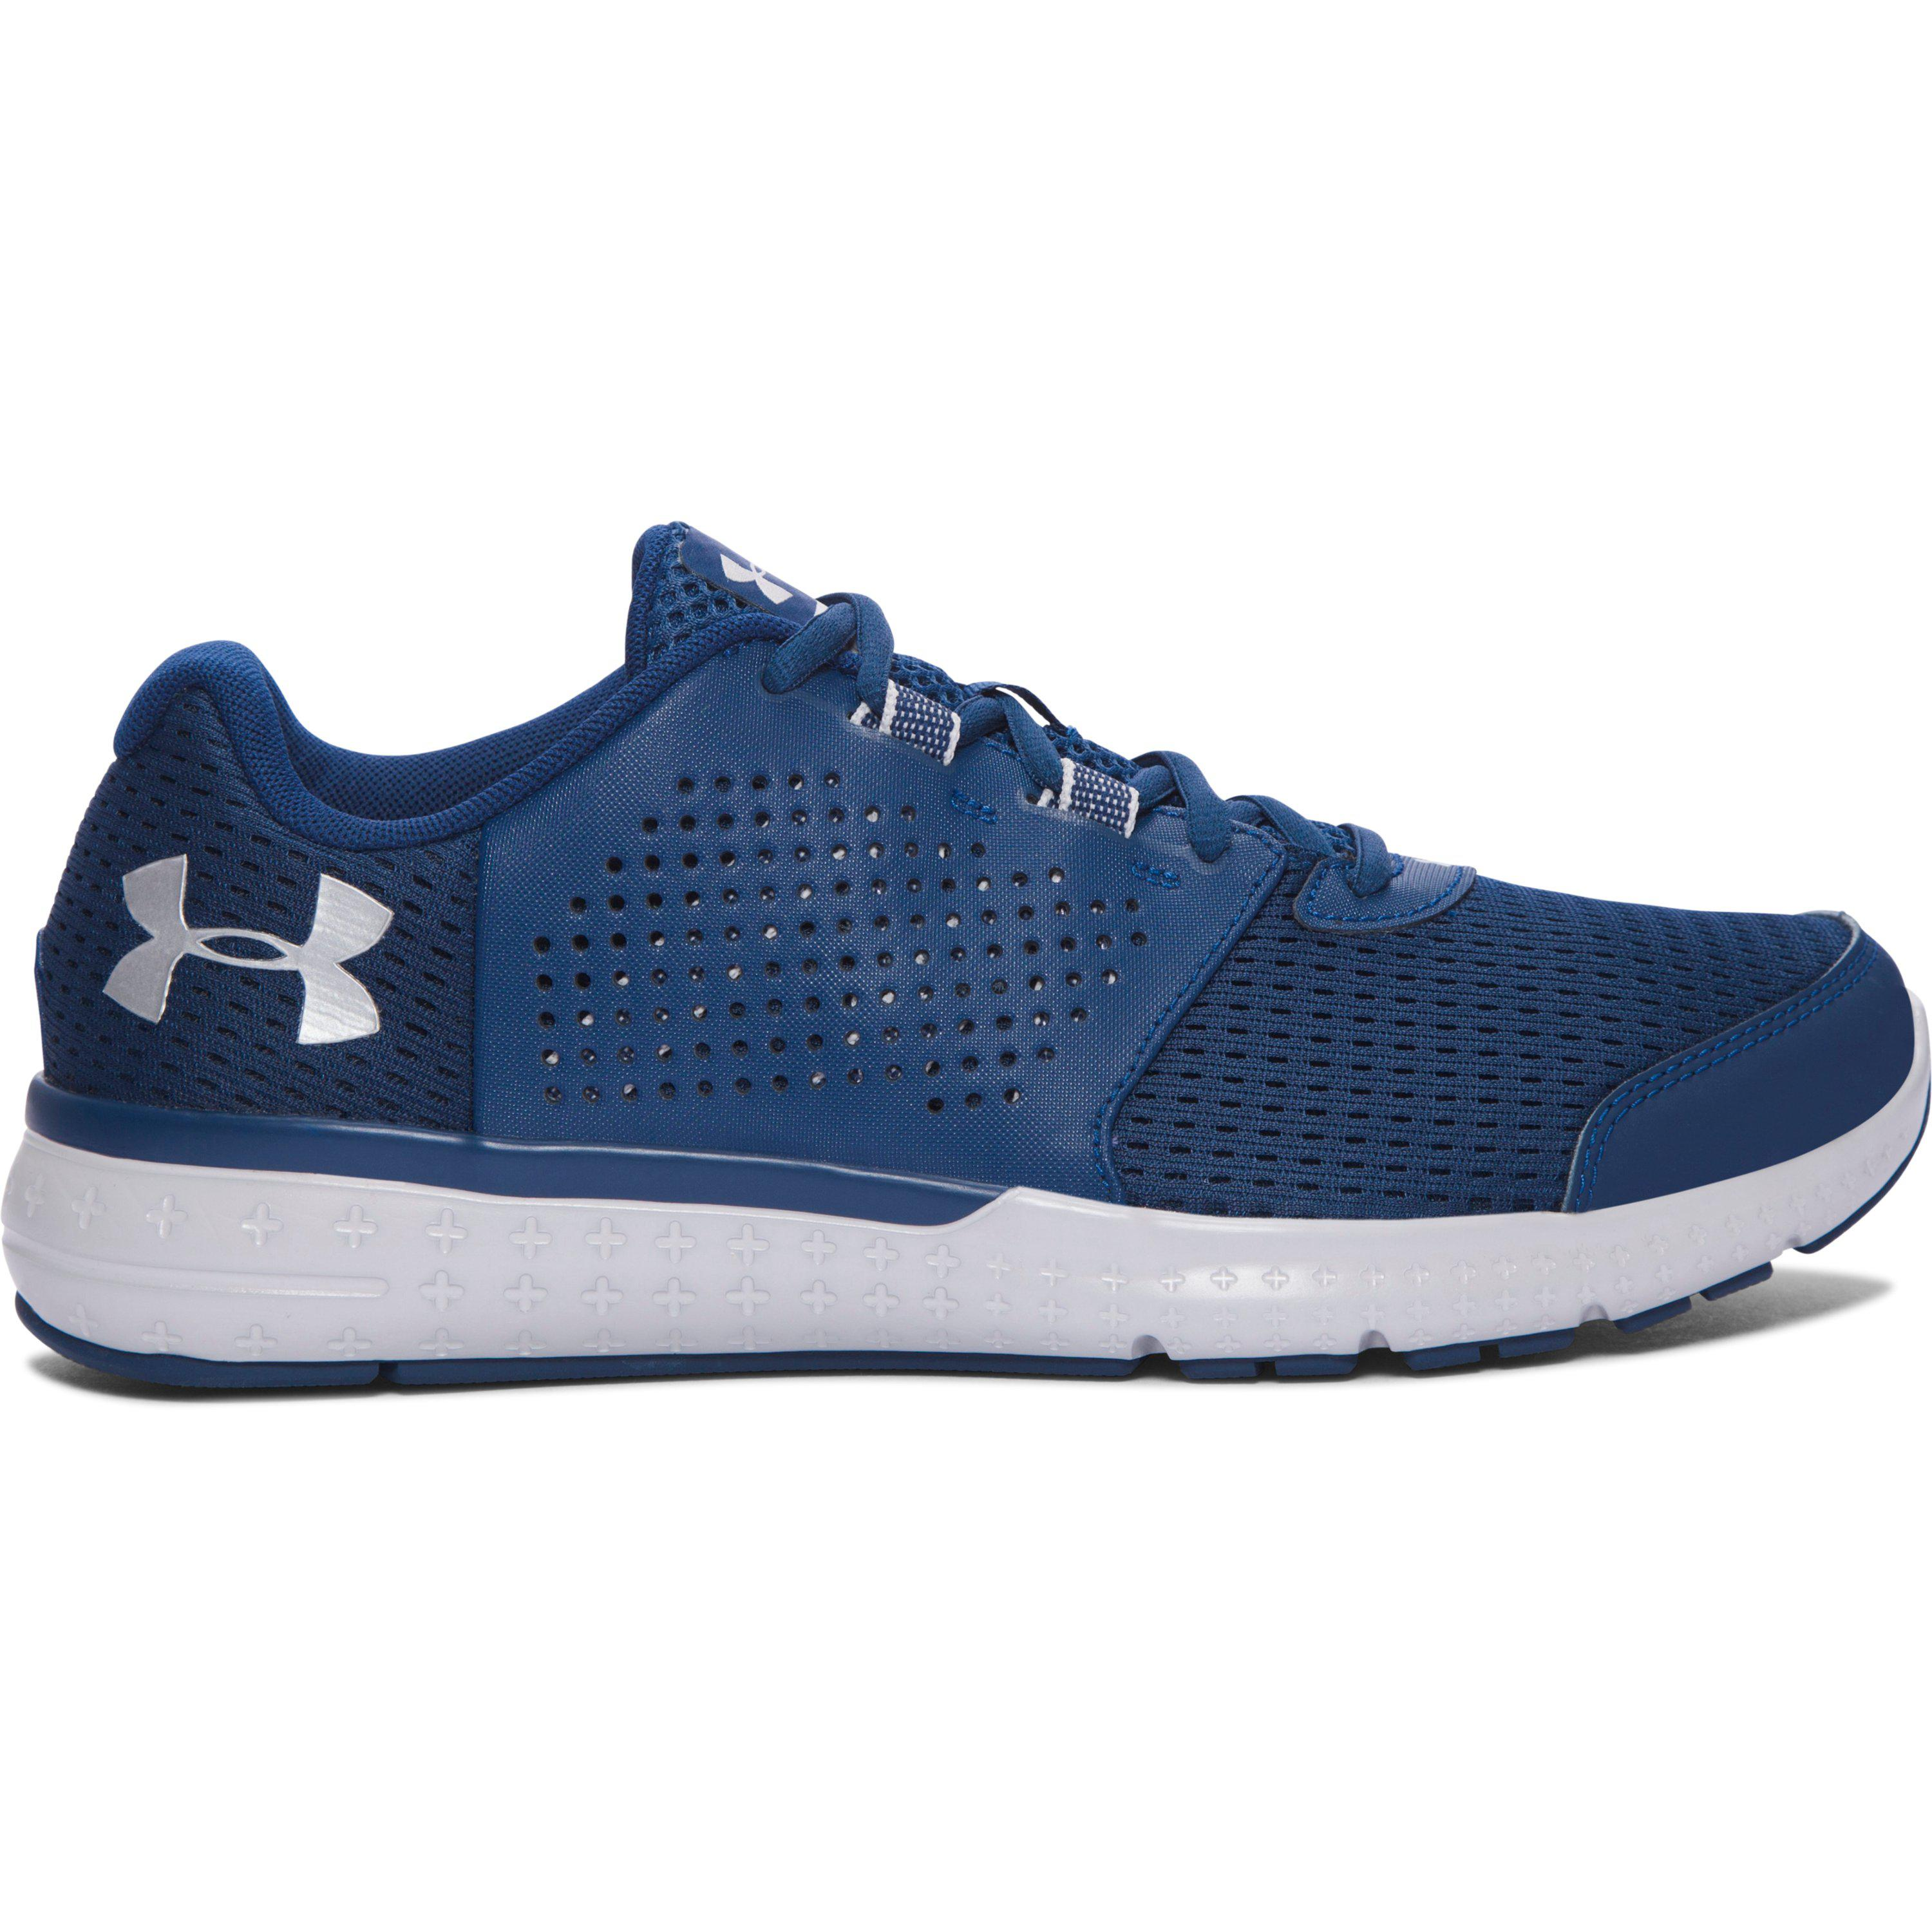 Under Armour. Blue Men's Ua Micro G® Fuel Running Shoes